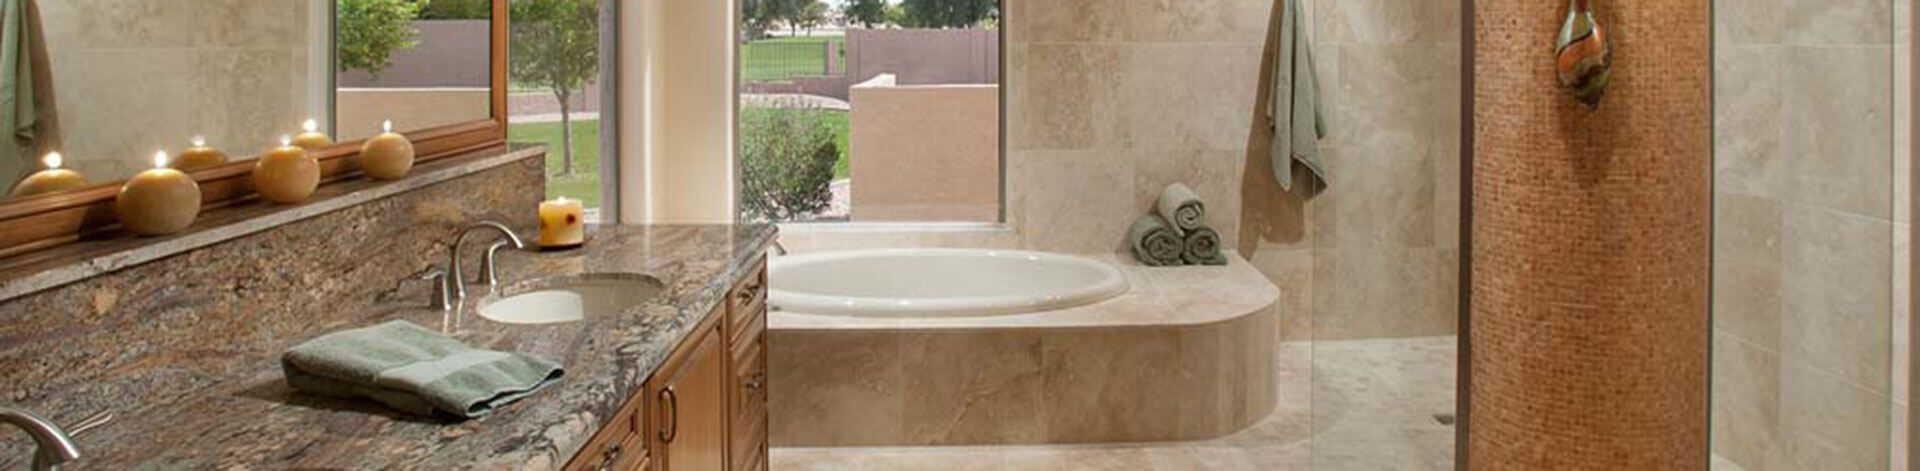 Phoenix Bathroom Remodel Glamorous Bathroom Remodeling In Phoenix & Scottsdale  Republic West Remodeling Decorating Design